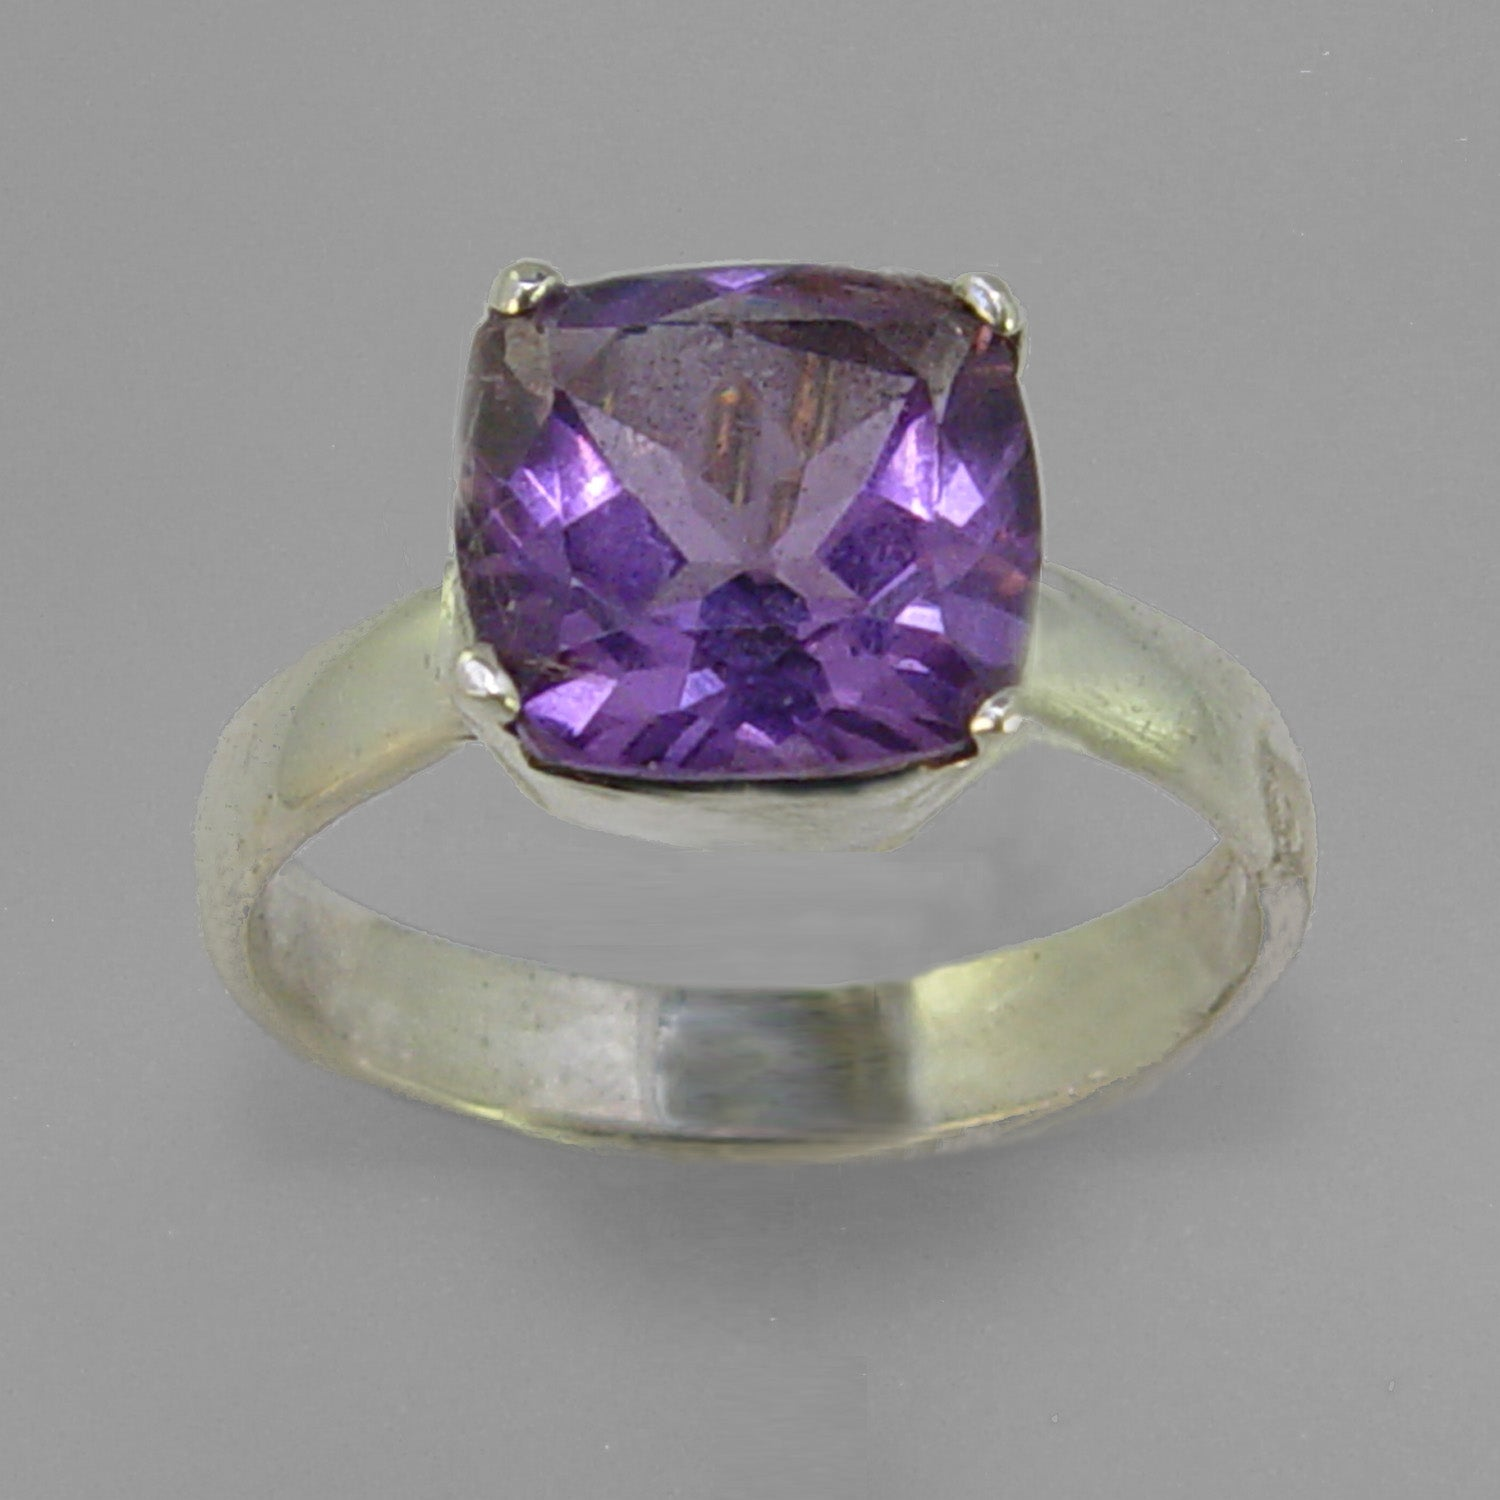 Amethyst 3.4 ct Antique Square Cut Sterling Silver Ring, Size 9